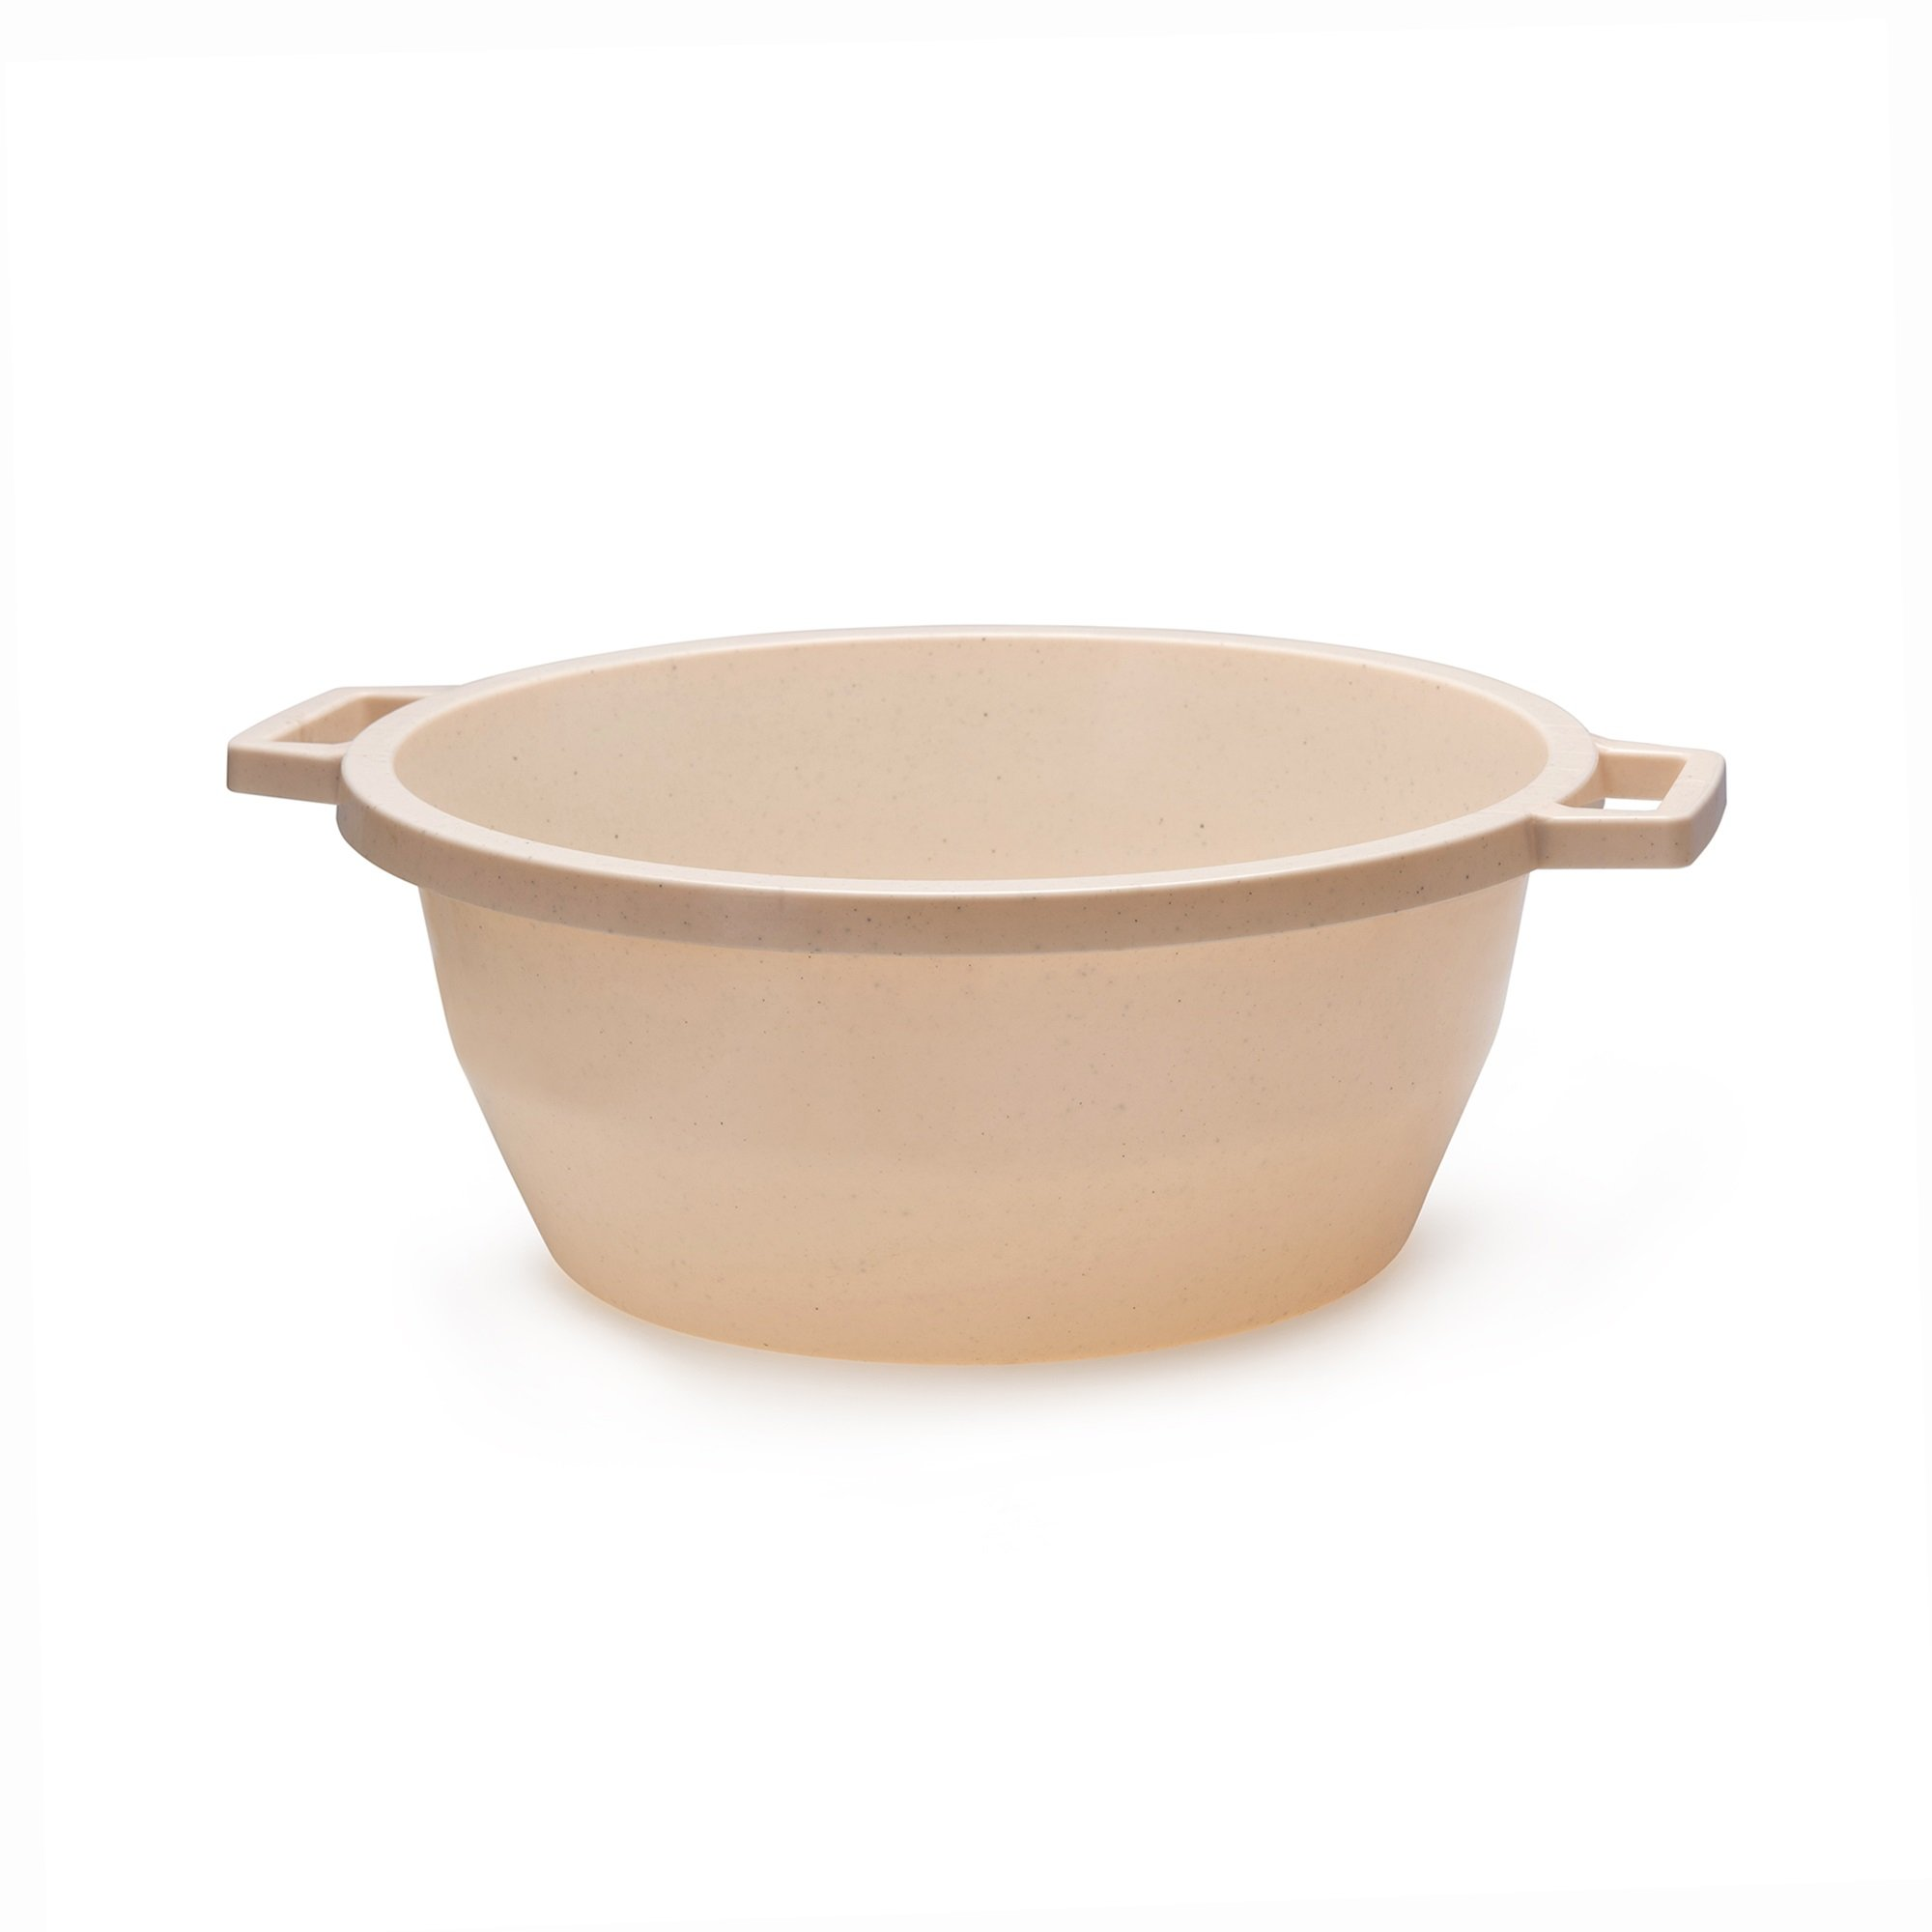 Ybmhome YBM HOME Round Plastic Wash Basin Dish Pan, Laundry Pan, Cleaning Pail, Beige with Dots 1287 (1)